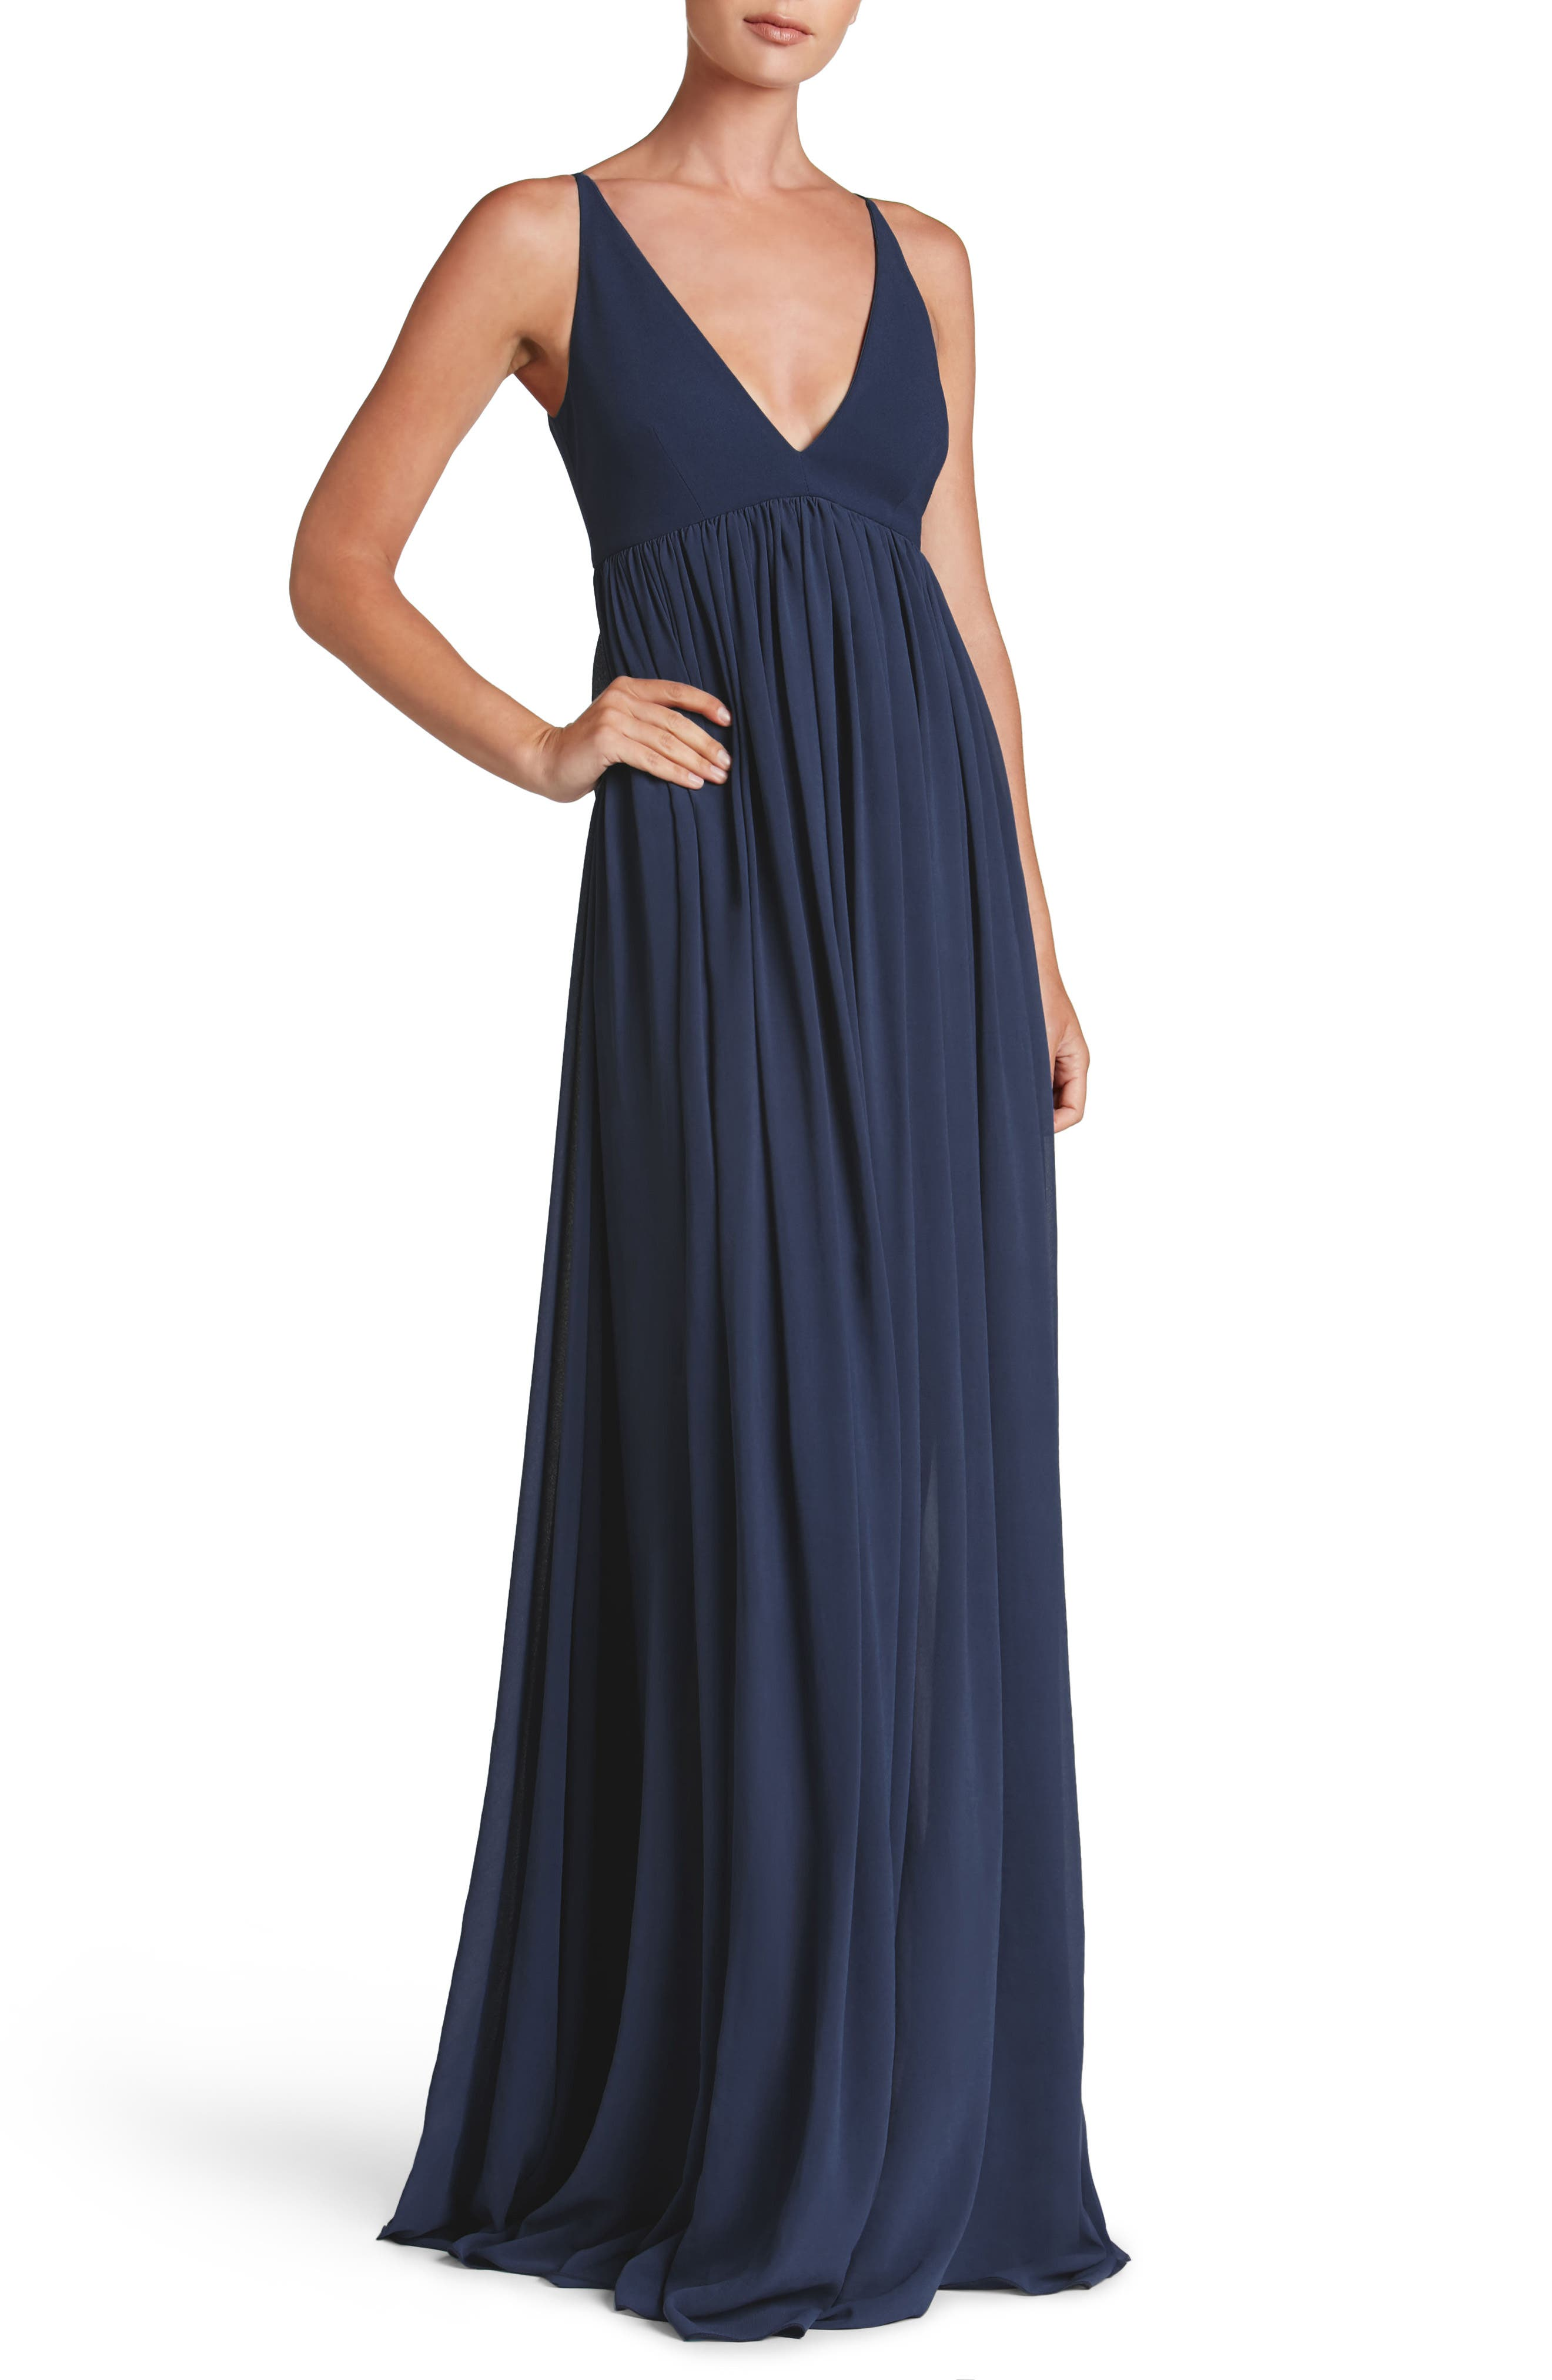 DRESS THE POPULATION, Phoebe Chiffon Gown, Main thumbnail 1, color, 456